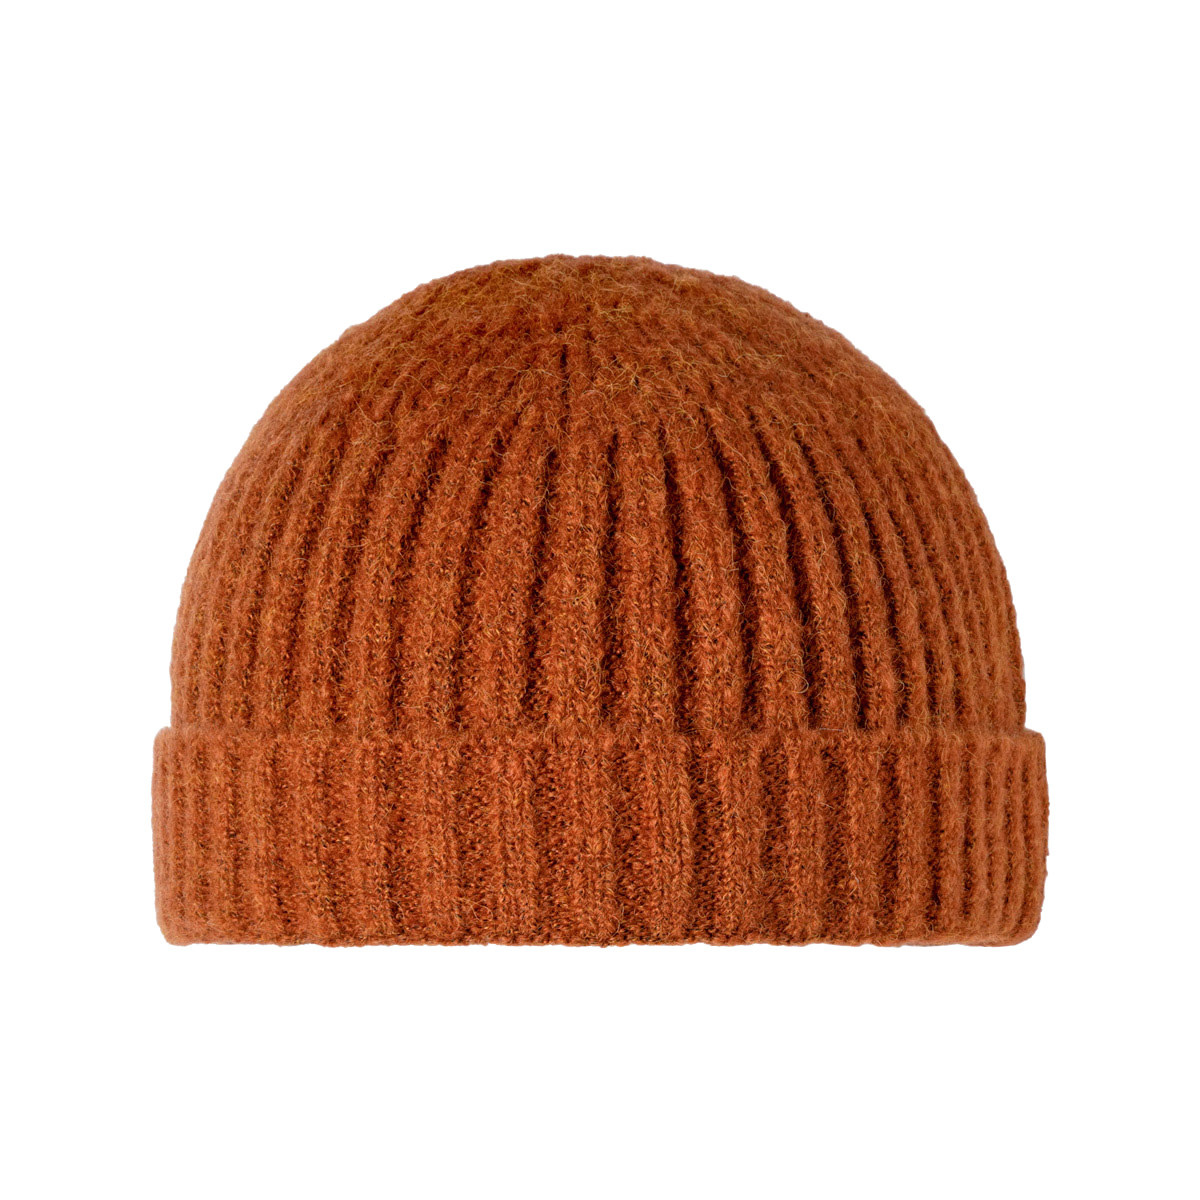 With love Beanie cutie - orange